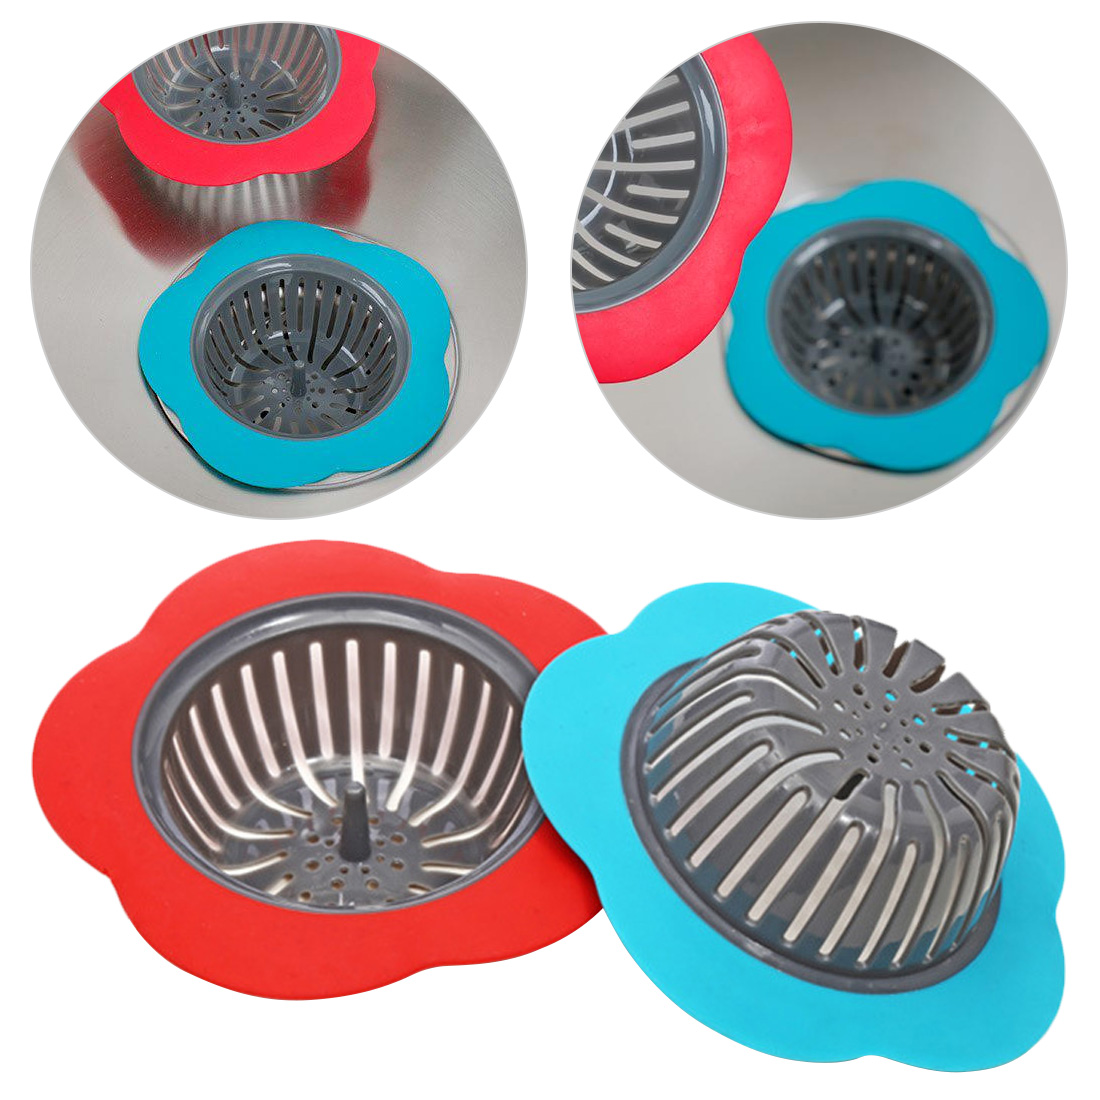 Kitchen Sink Stopper bathtub Hair Filter Flower Shaped Silicone Sink Strainer Shower Sink Drains Cover Drain sink Filter